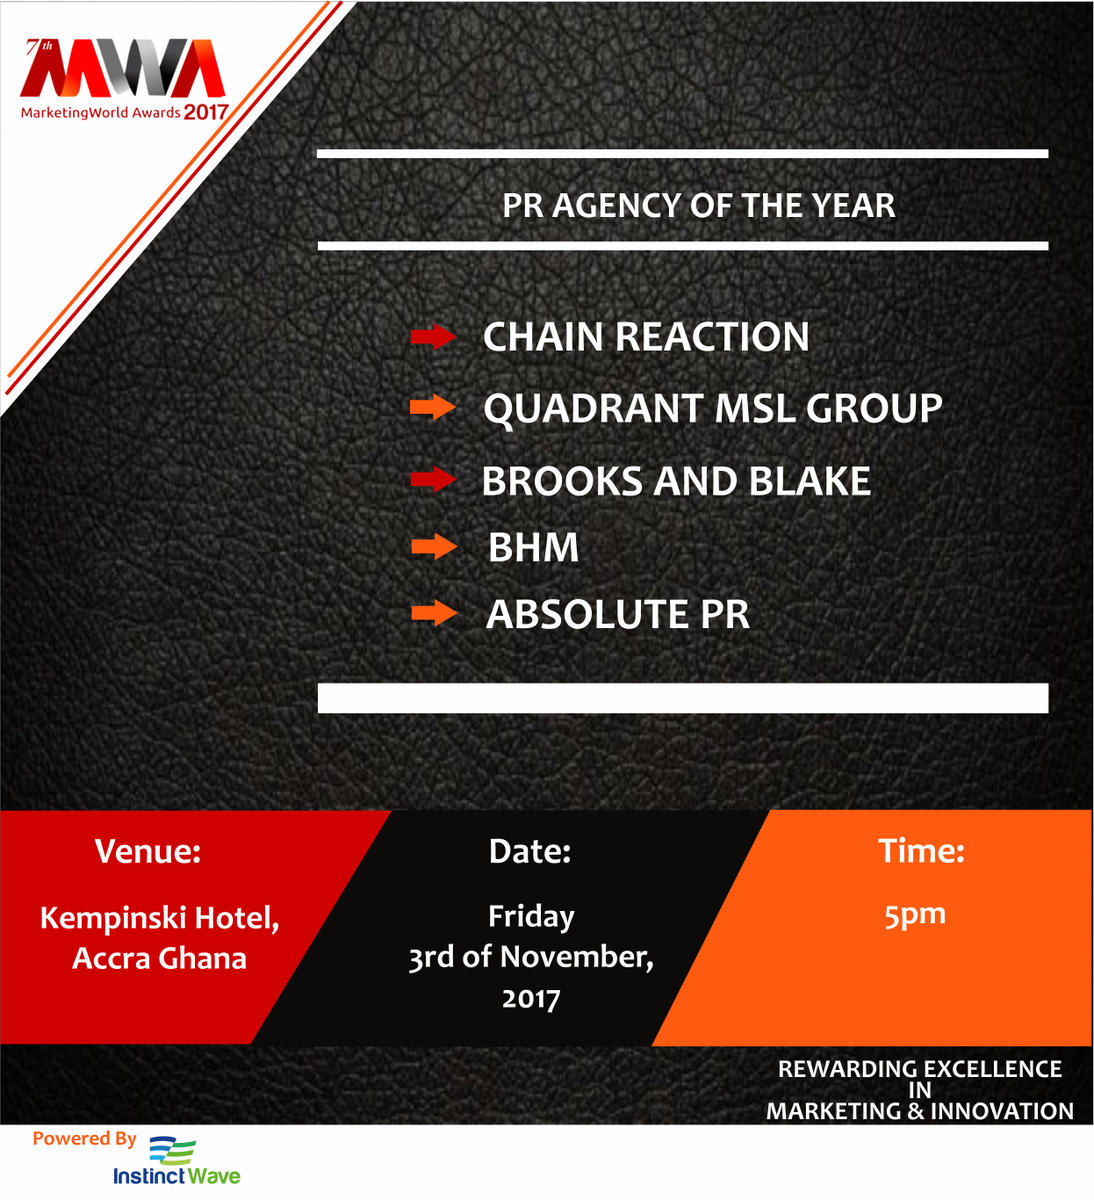 Who deserves to WIN the PR Agency of the Year Award in Nigeria? Please VOTE in our next Tweet #PR #Agency #Nigeria #mwaawards #Marketing<br>http://pic.twitter.com/0d7p2yAOAt